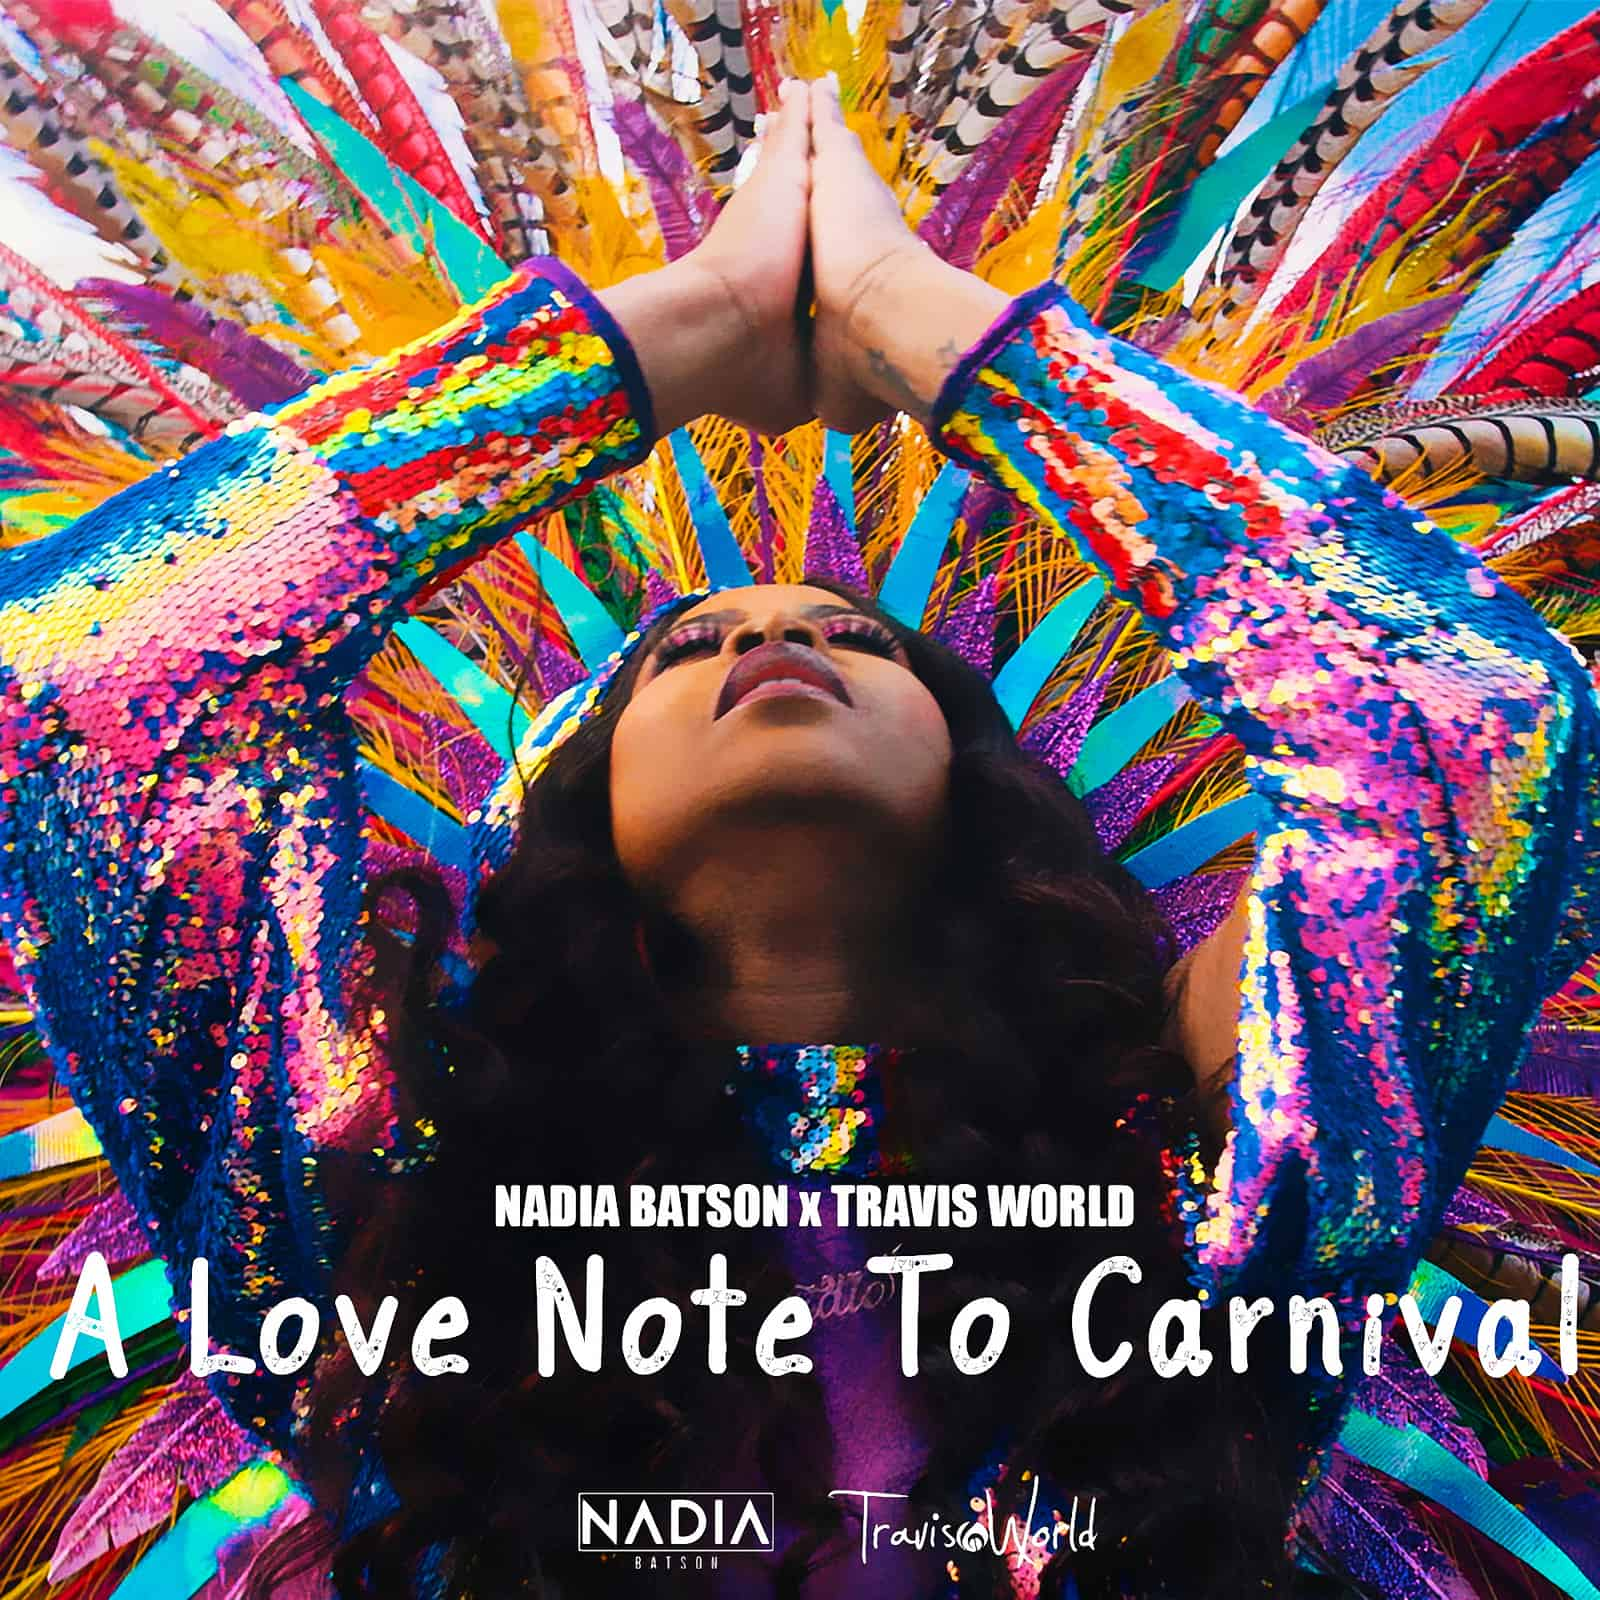 Nadia Batson & Travis World - A Love Note To Carnival